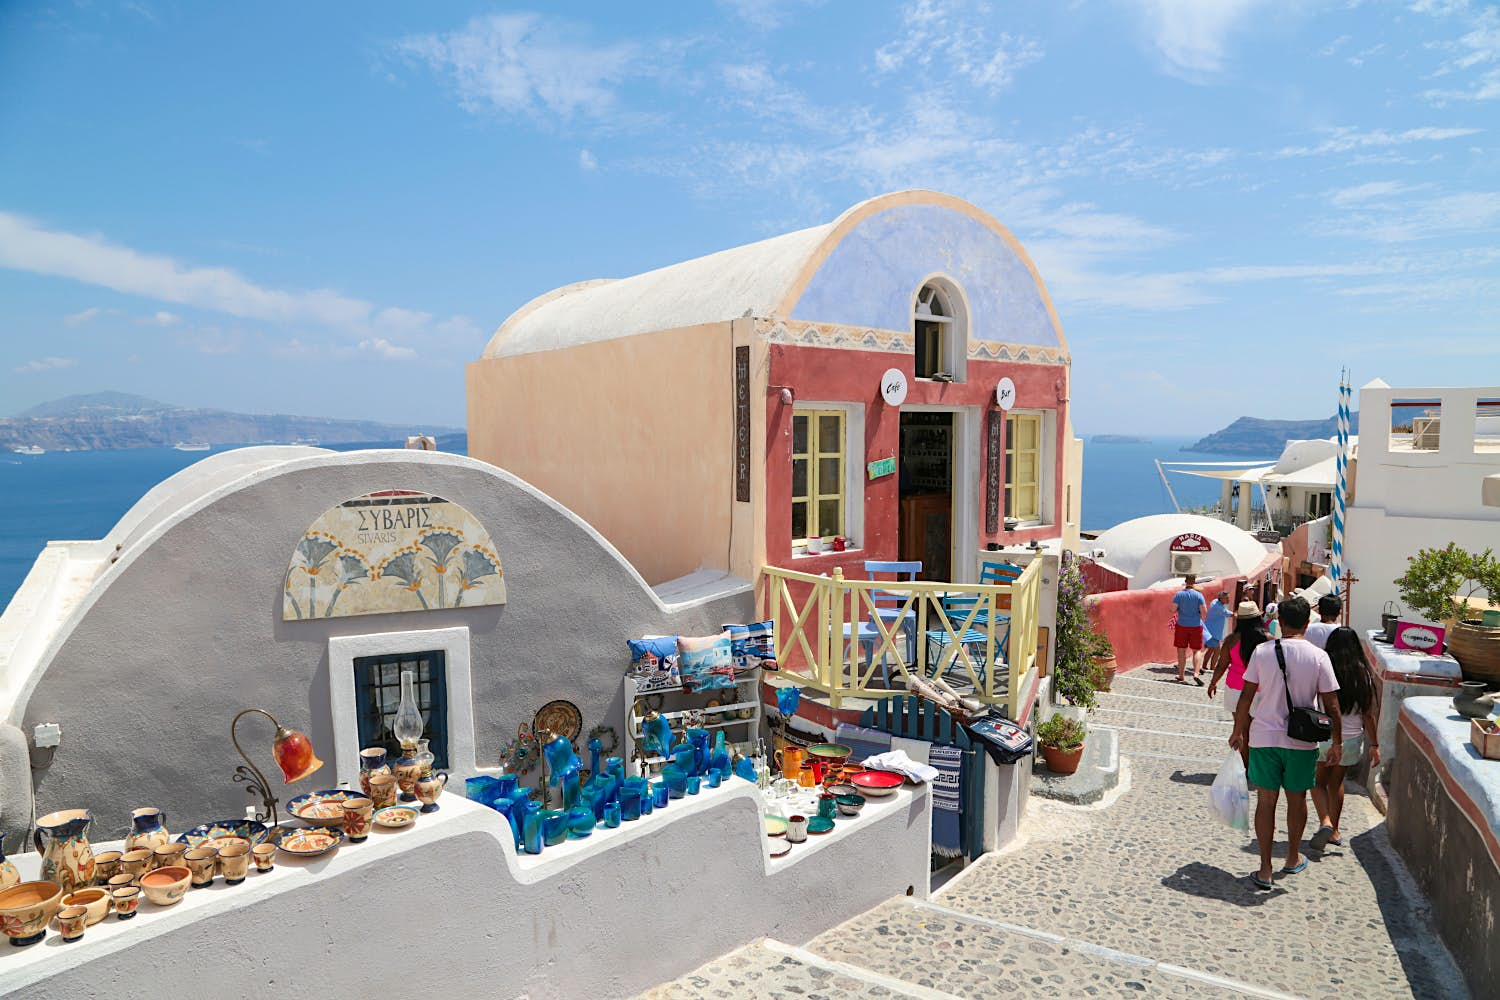 Picturesque alleys of Oia village lined with domed buildings selling souvenirs.